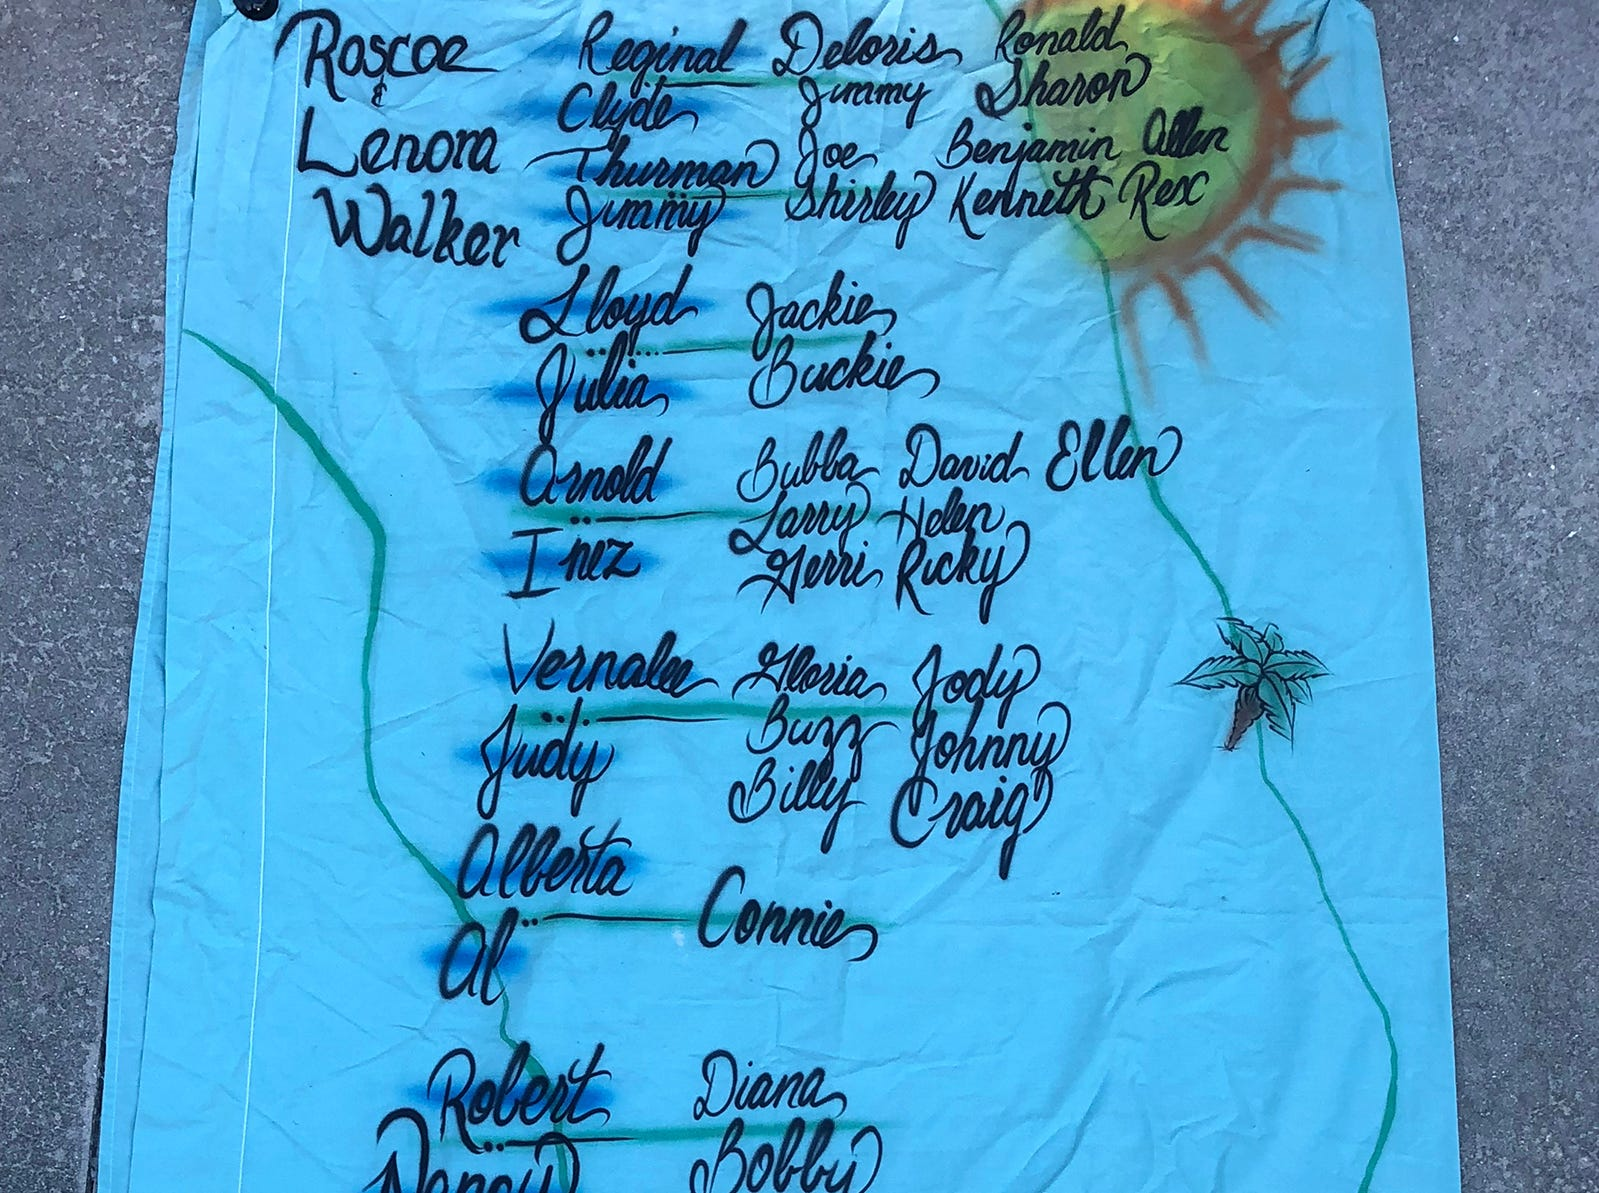 A sheet was decorated with family-inspired graphics for a 1983 Walker reunion. Robert Walker Sr., born on Marco Island in 1921, celebrated his 98th birthday on Sunday, Jan. 6 at his home in Cross City, Florida.